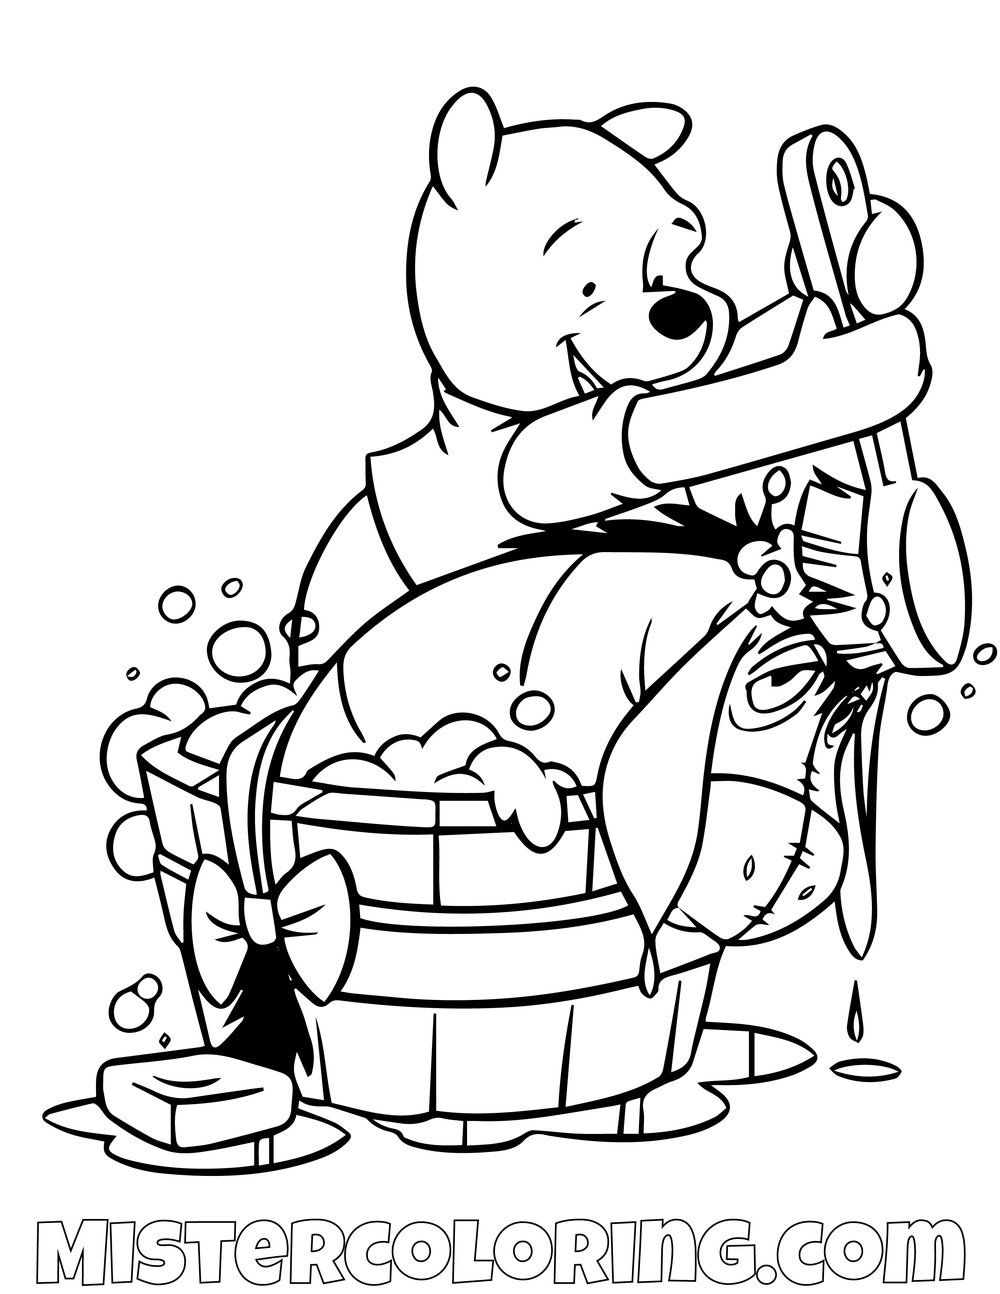 Winnie The Pooh Giving Donkey A Shower Coloring Page Disney Coloring Sheets Disney Coloring Pages Baby Coloring Pages